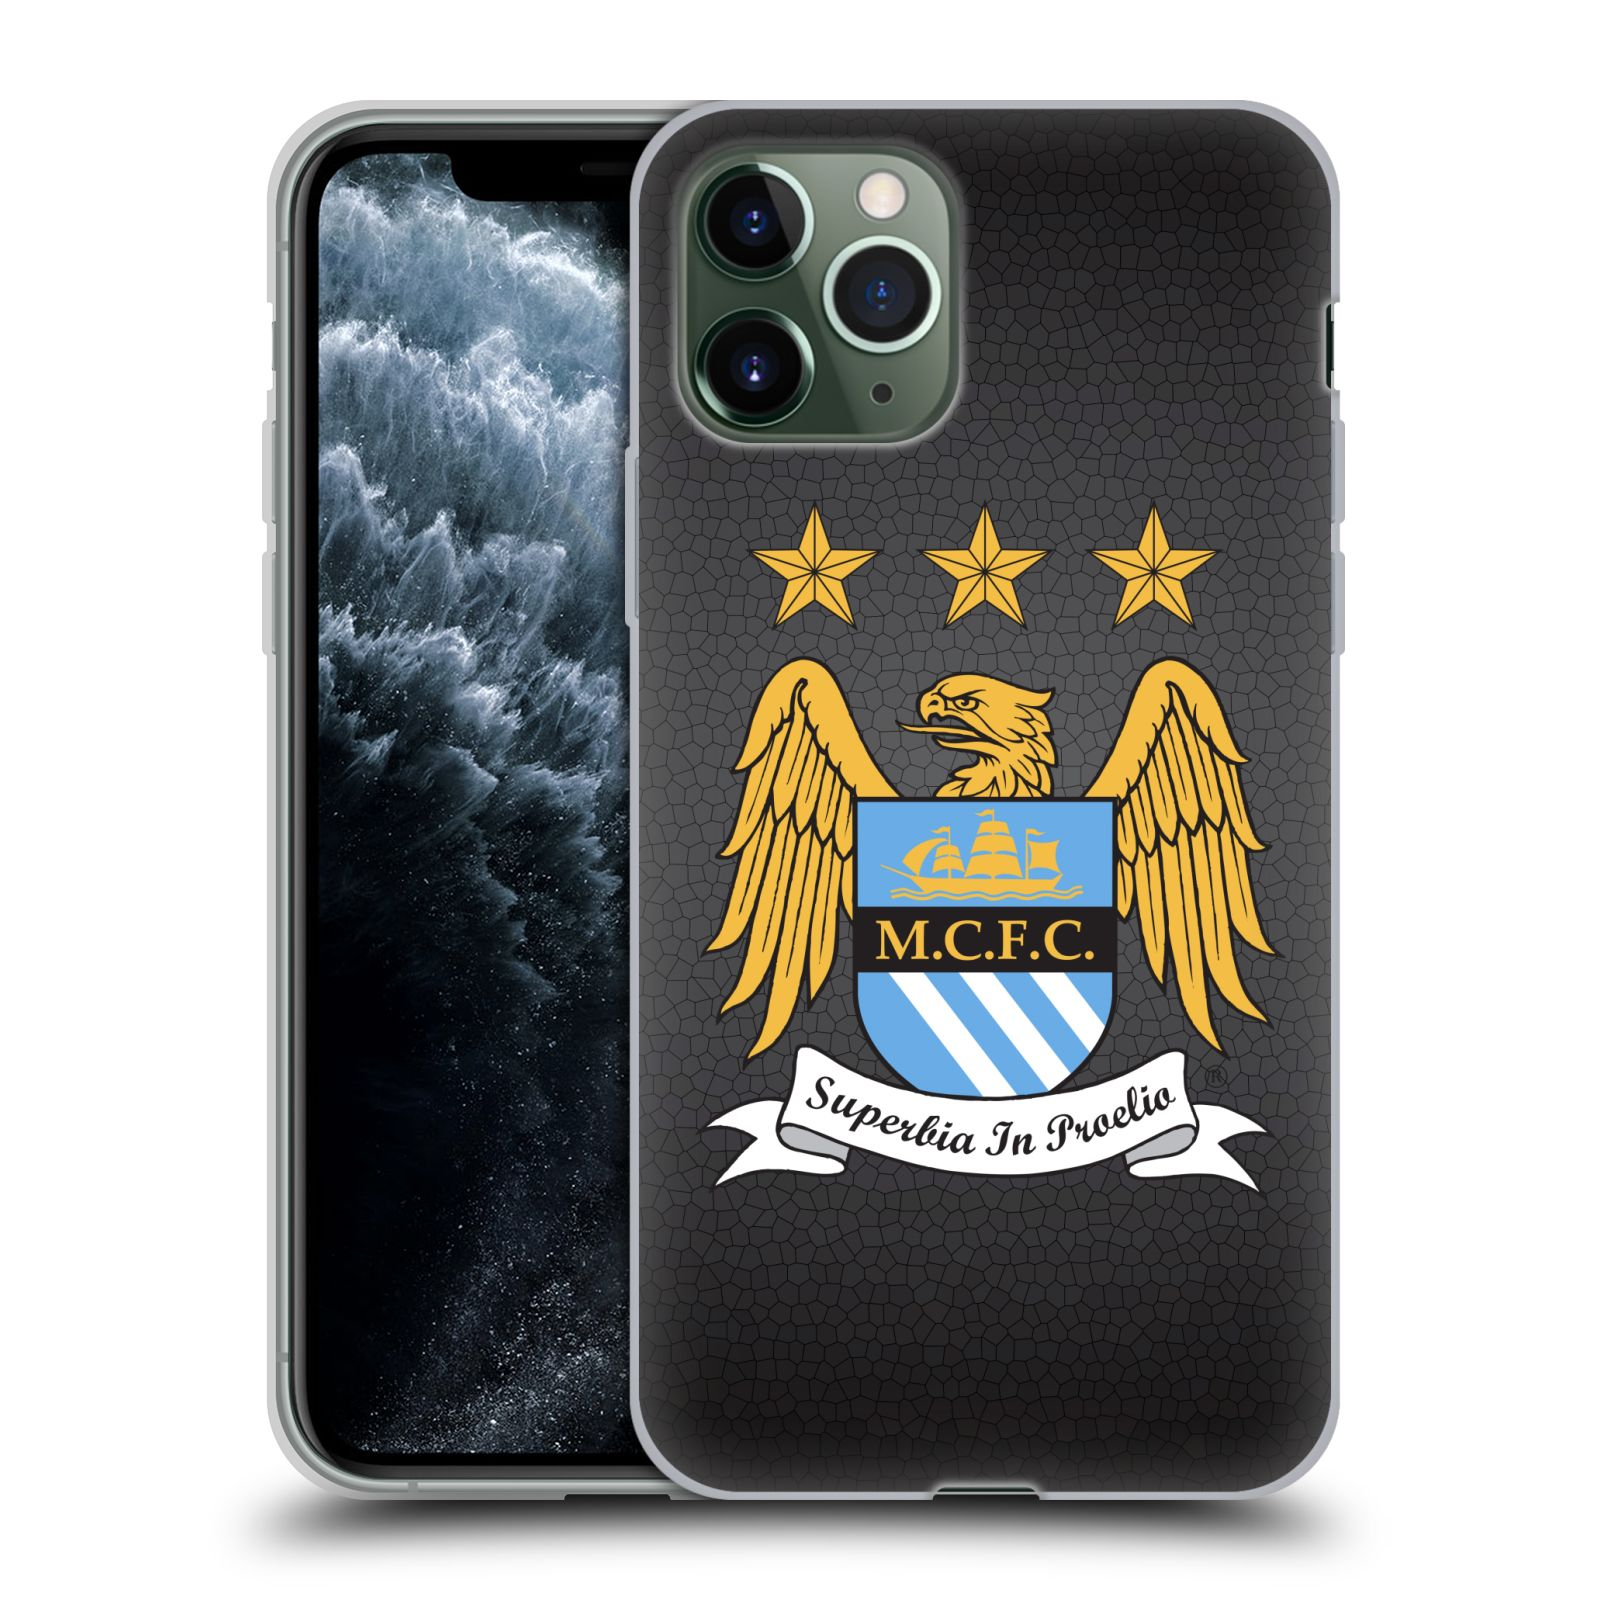 ebay krytu na iphone xs , Silikonové pouzdro na mobil Apple iPhone 11 Pro - Head Case - Manchester City FC - Superbia In Proelio